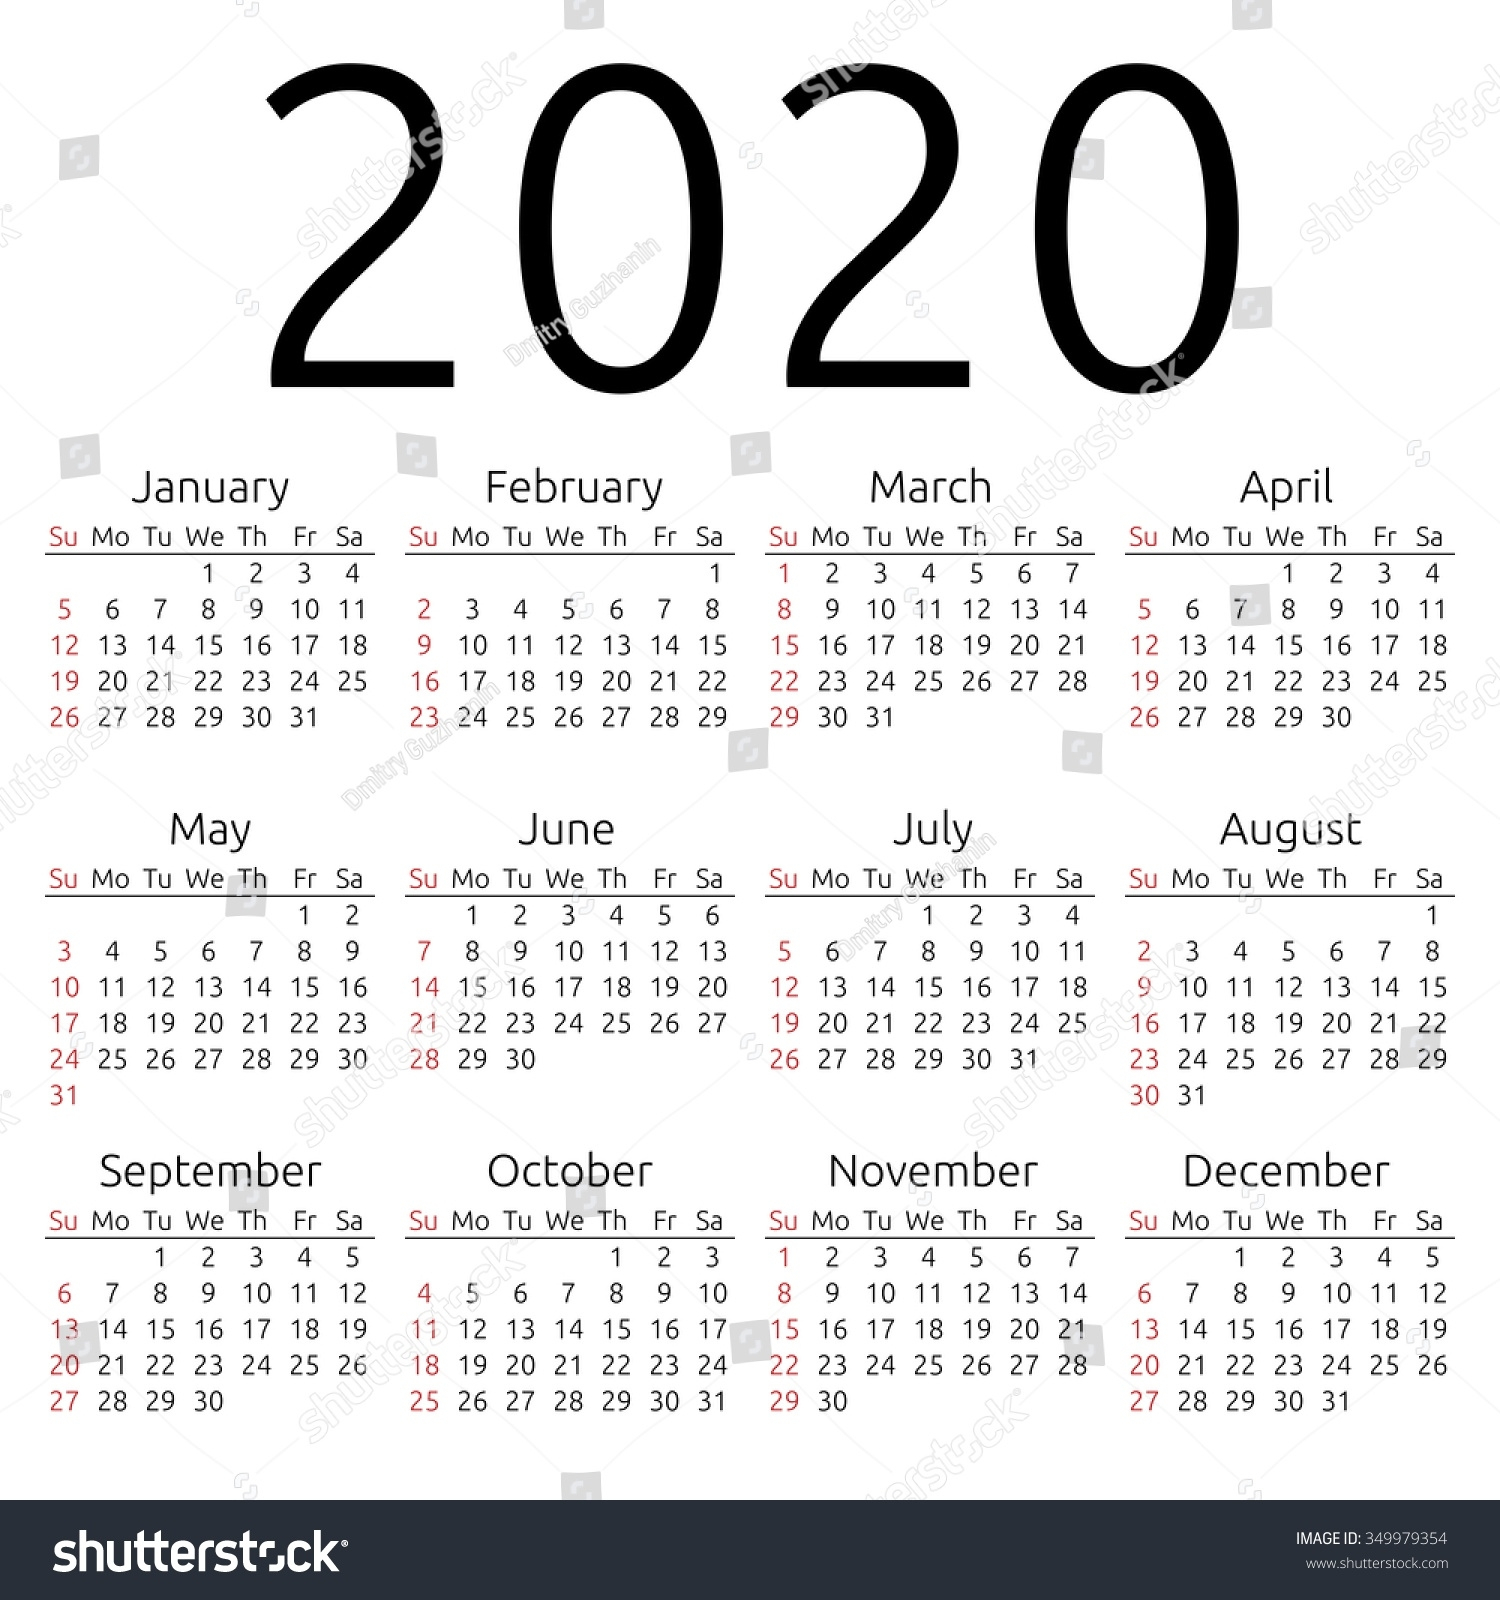 Dashing 2020 Calendar With Week Numbers • Printable Blank Calendar throughout 2020 Calendar With Week Numbers In Excel